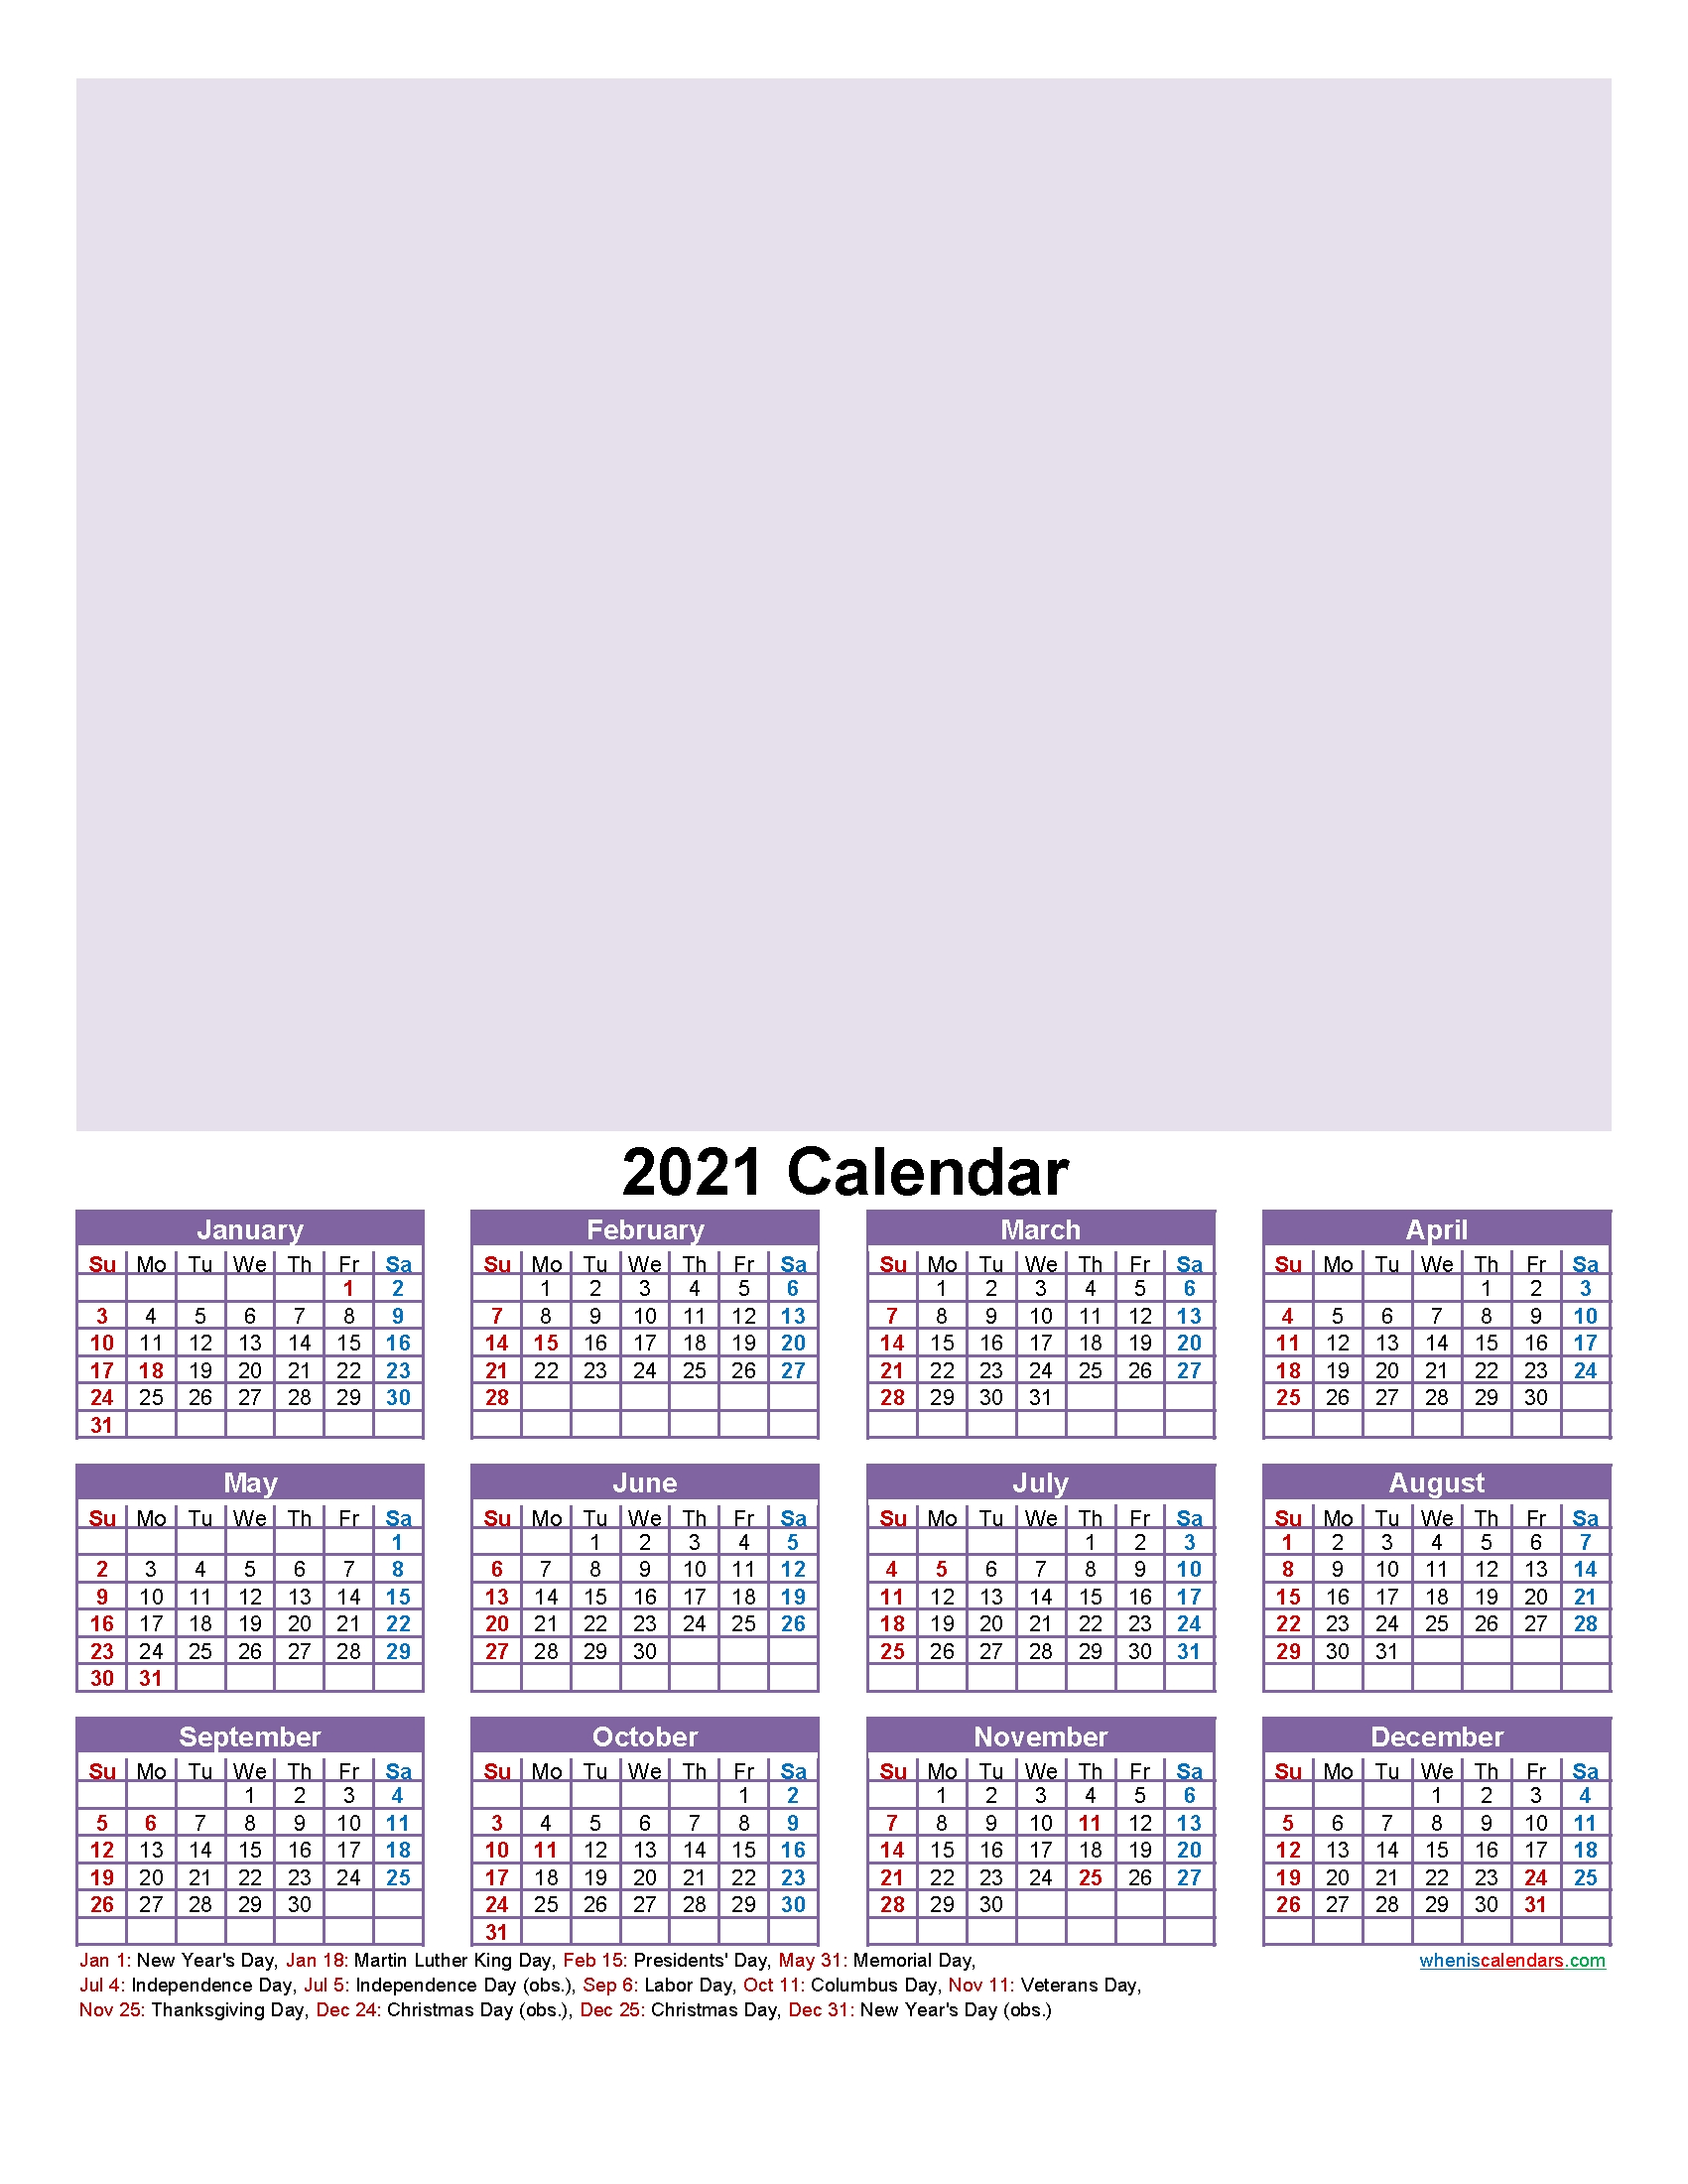 Make Your Own Photo Calendar Free 2021 - Template No.f21Y19 for One Page Photo Calendar 2021 Image